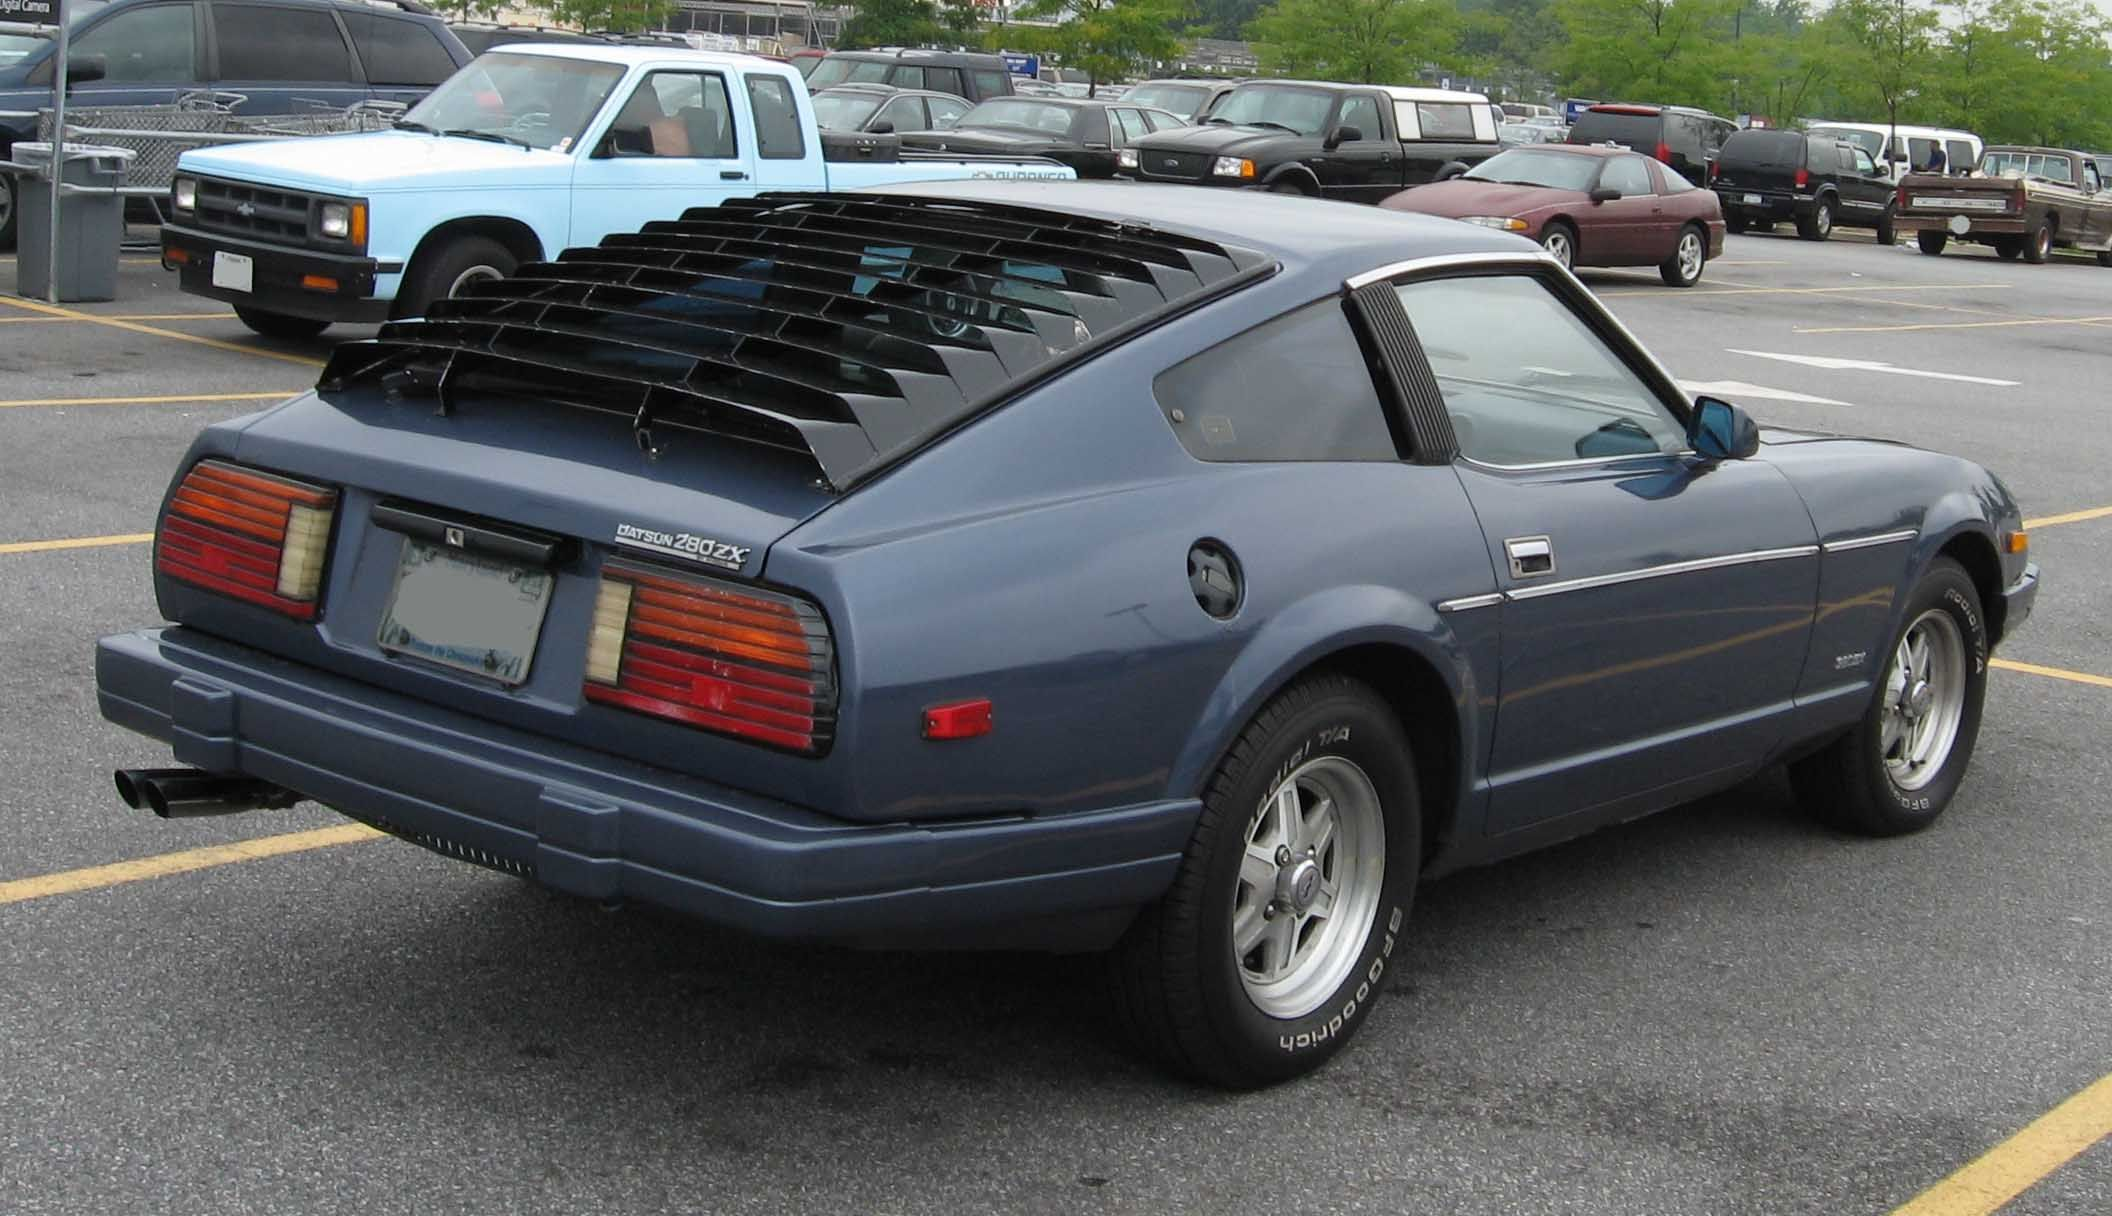 1983 datsun 280zx mine was burgundy classic cars pinterest cars